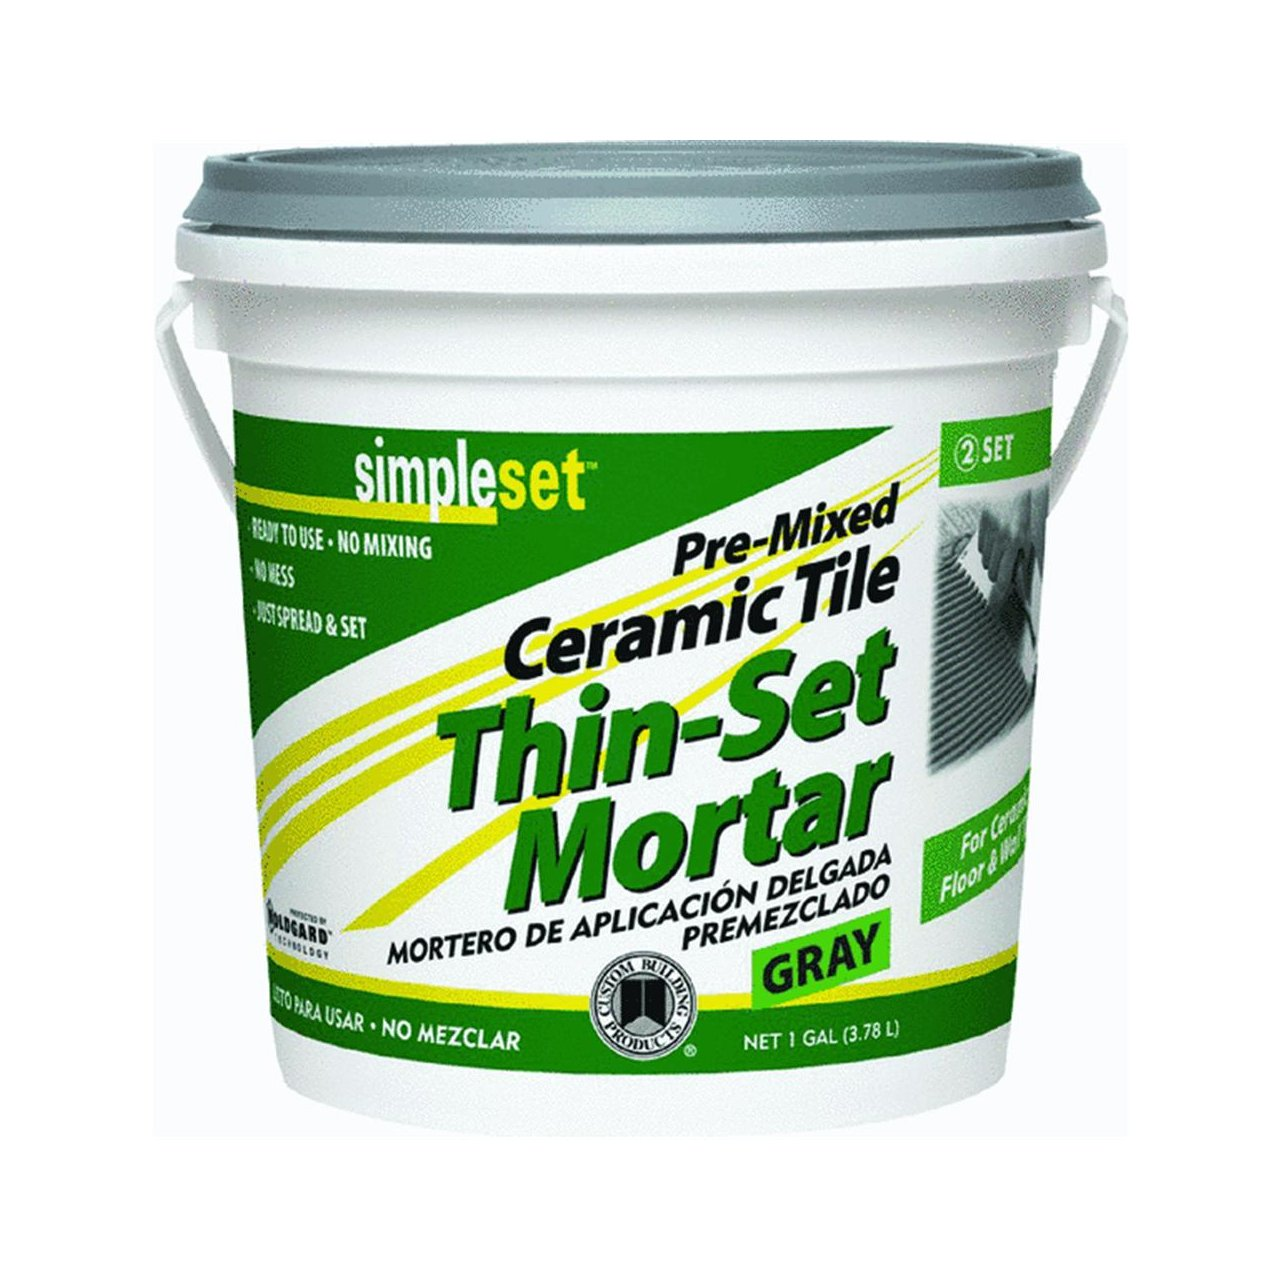 Simpleset pre mixed thin set mortar 1 qt tile grout amazon dailygadgetfo Image collections